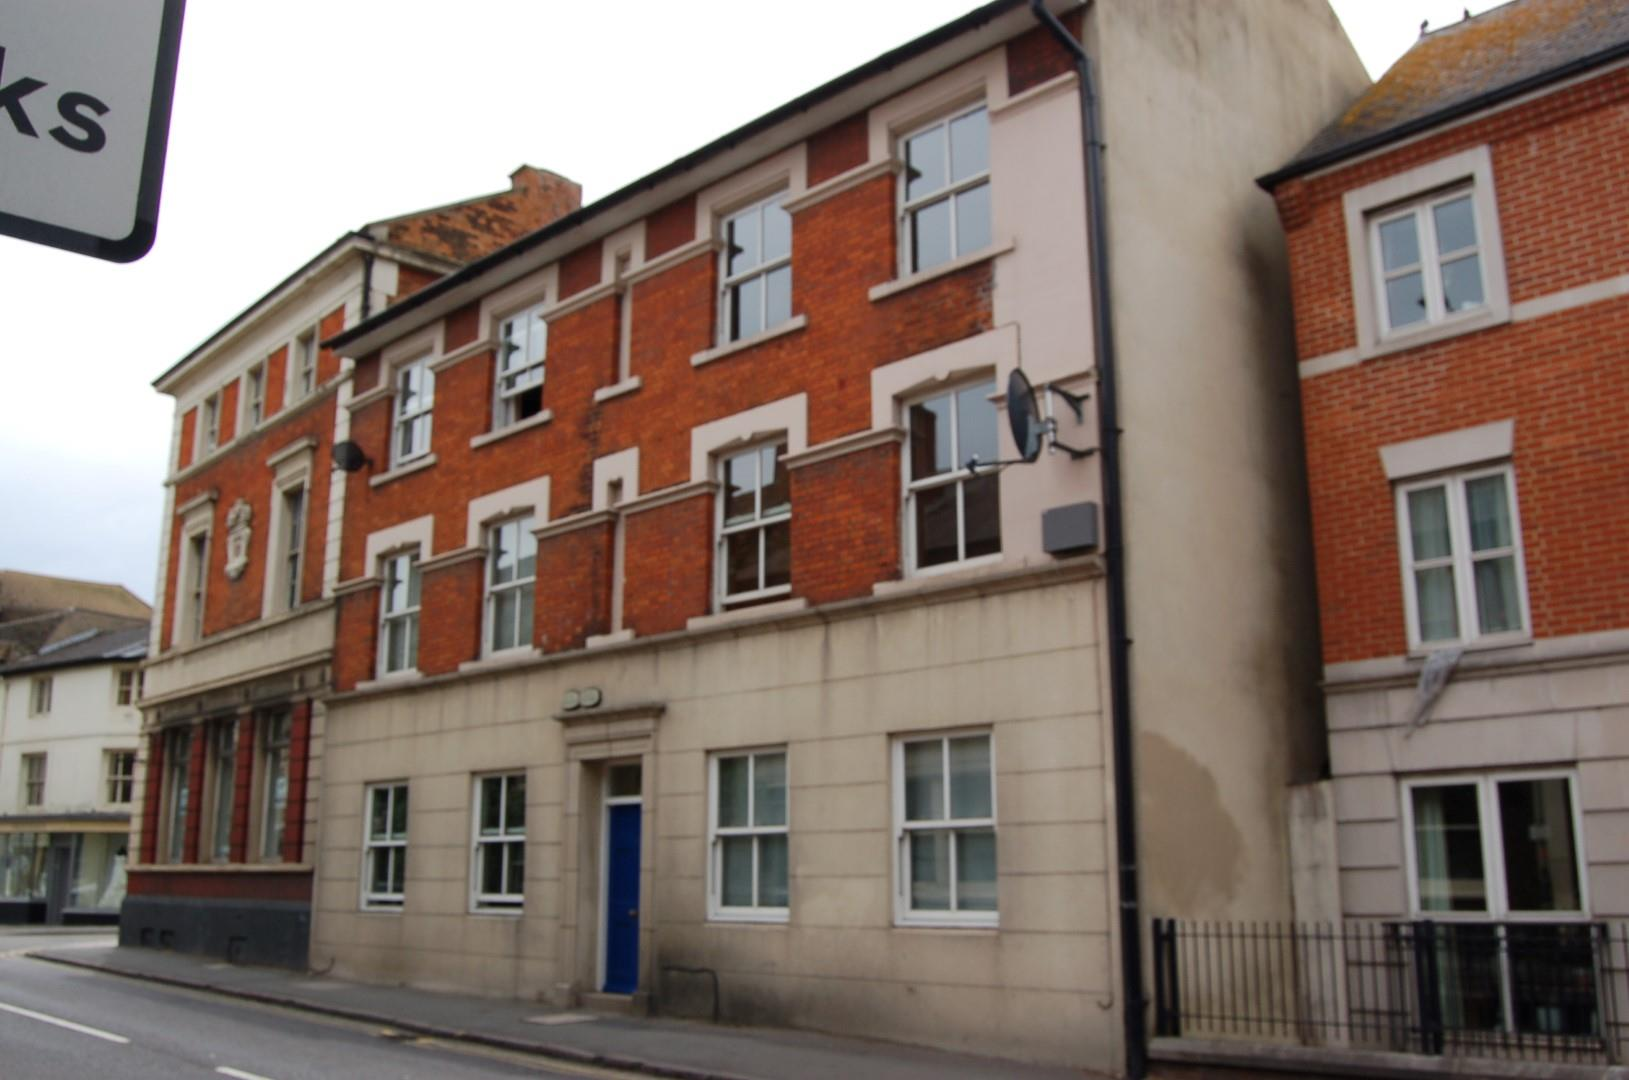 Cricklade Street, Old Town, Swindon Image 1